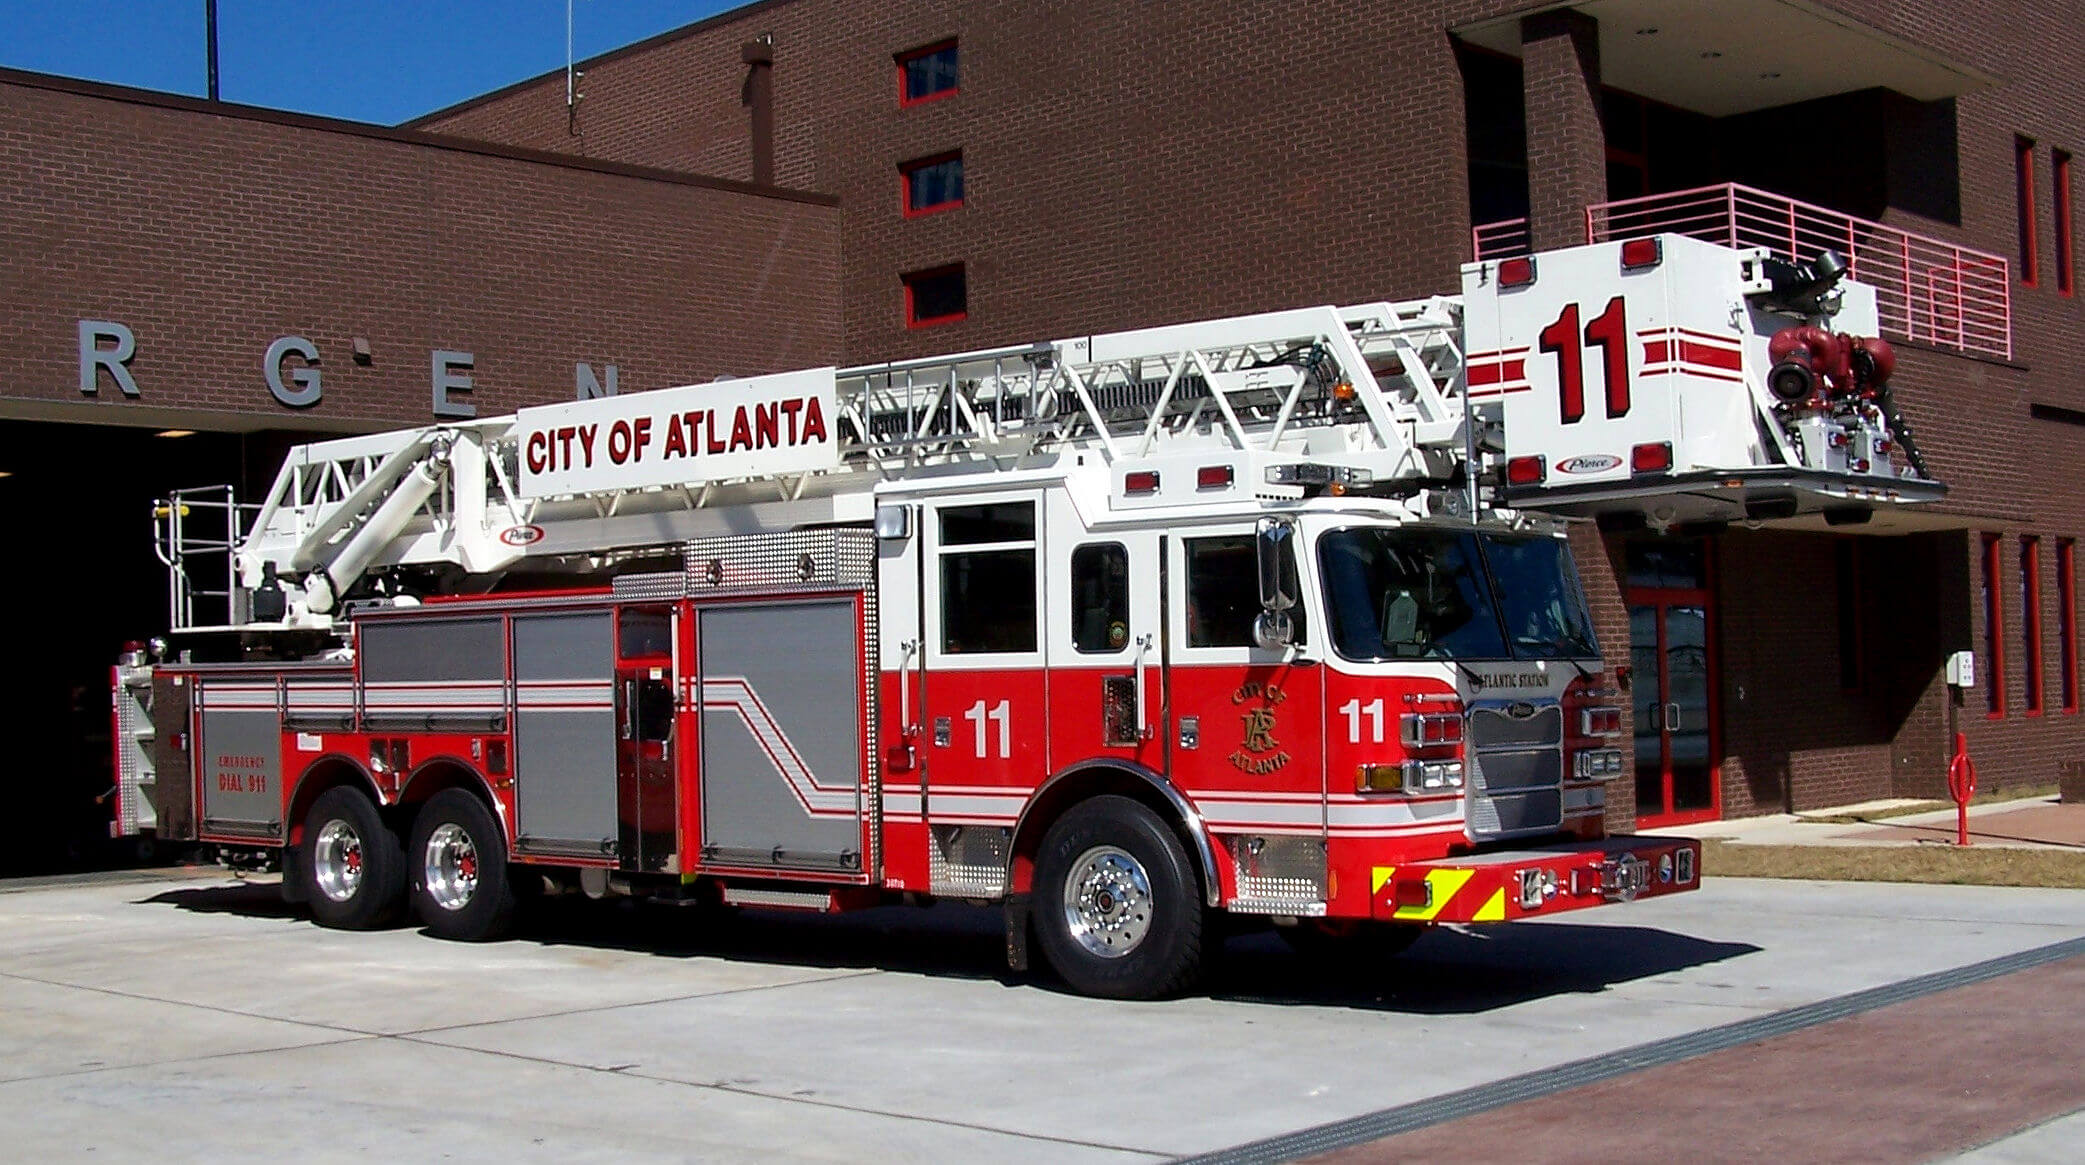 City of Atlanta Fire Station 11